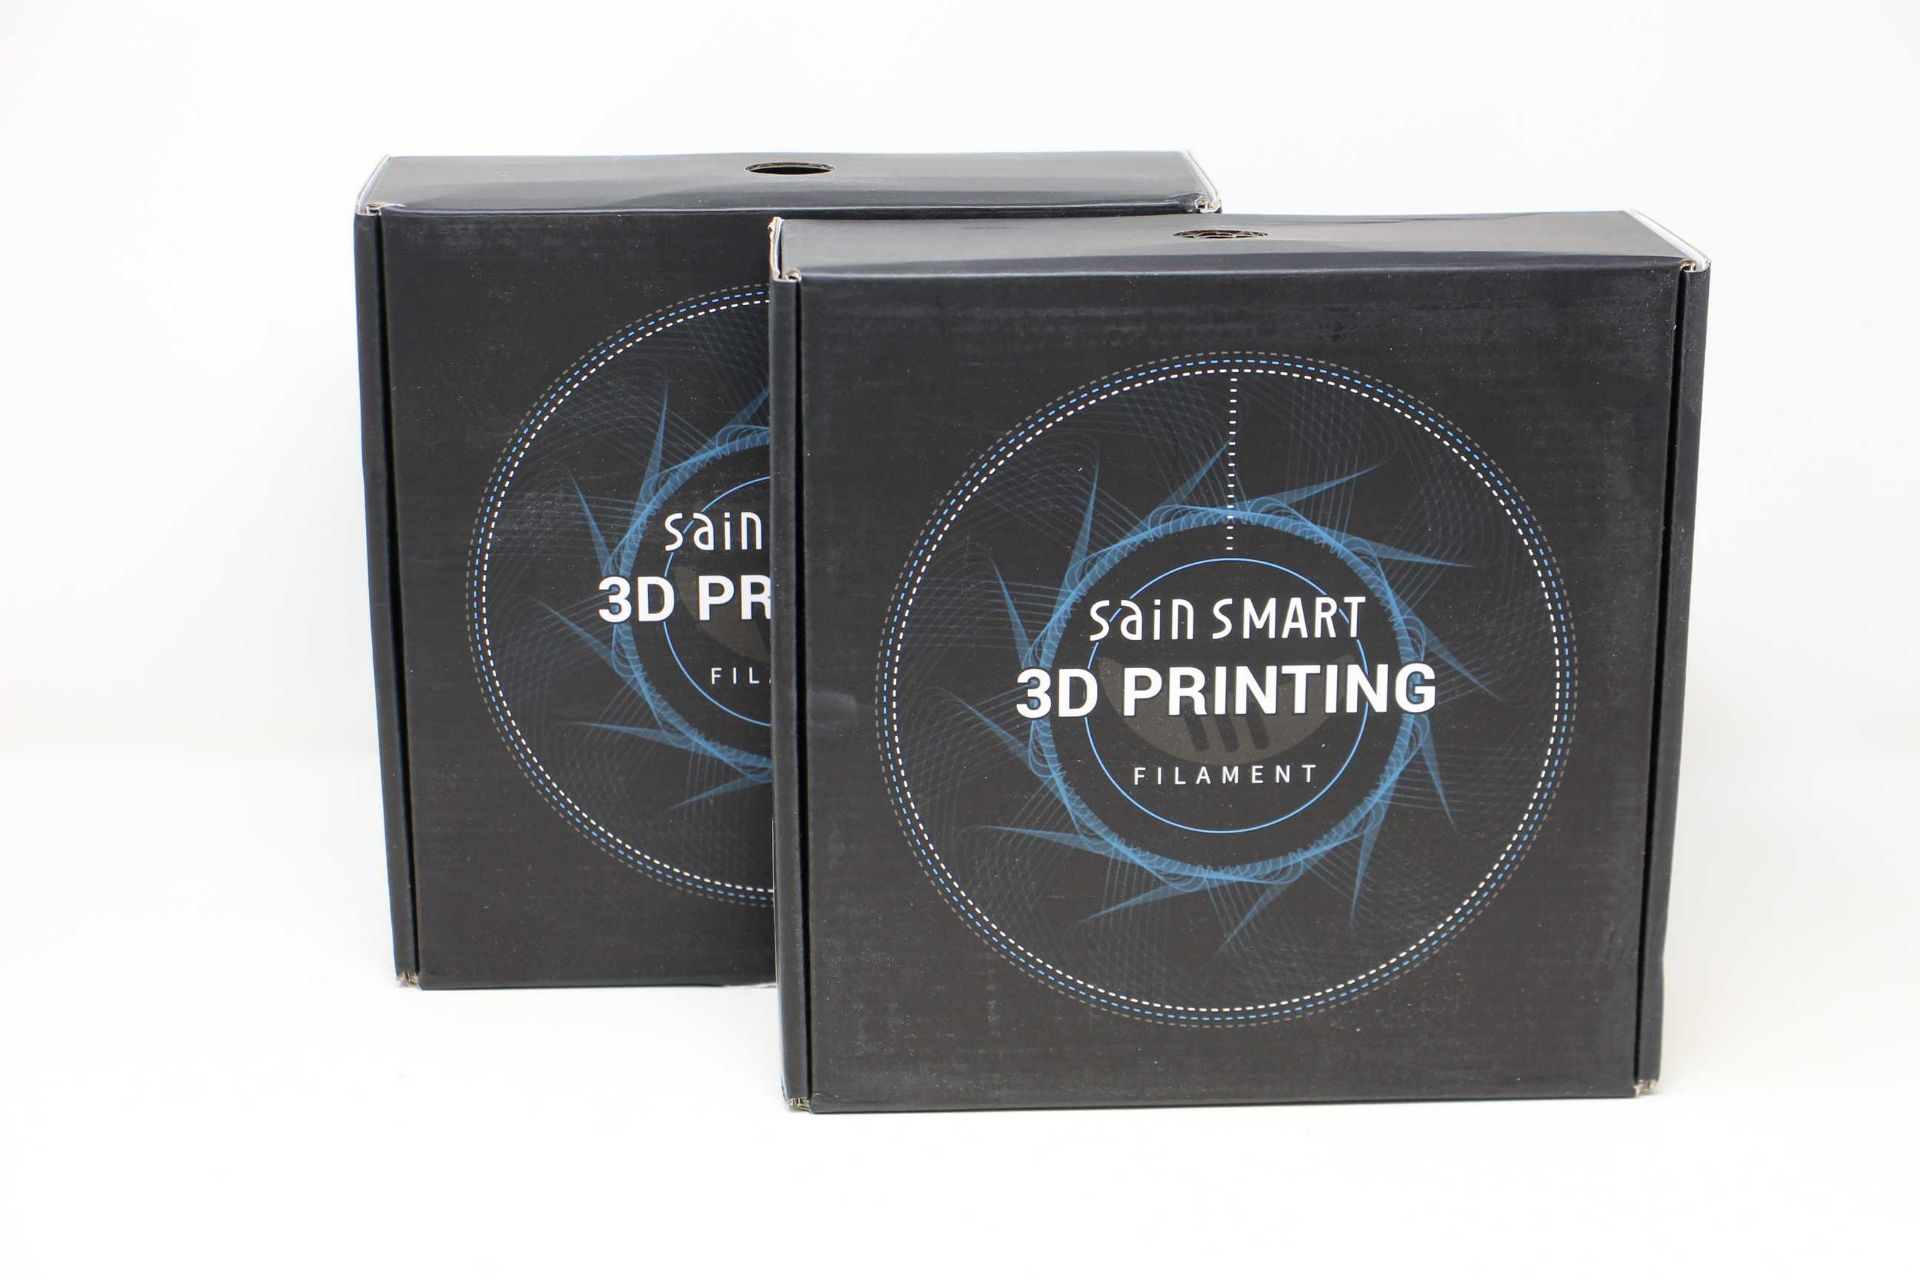 Two as new boxes of SainSmart Emerald Flexible TPU 3D Printing Filament (1.75 mm, 0.8 kg) (SKU: